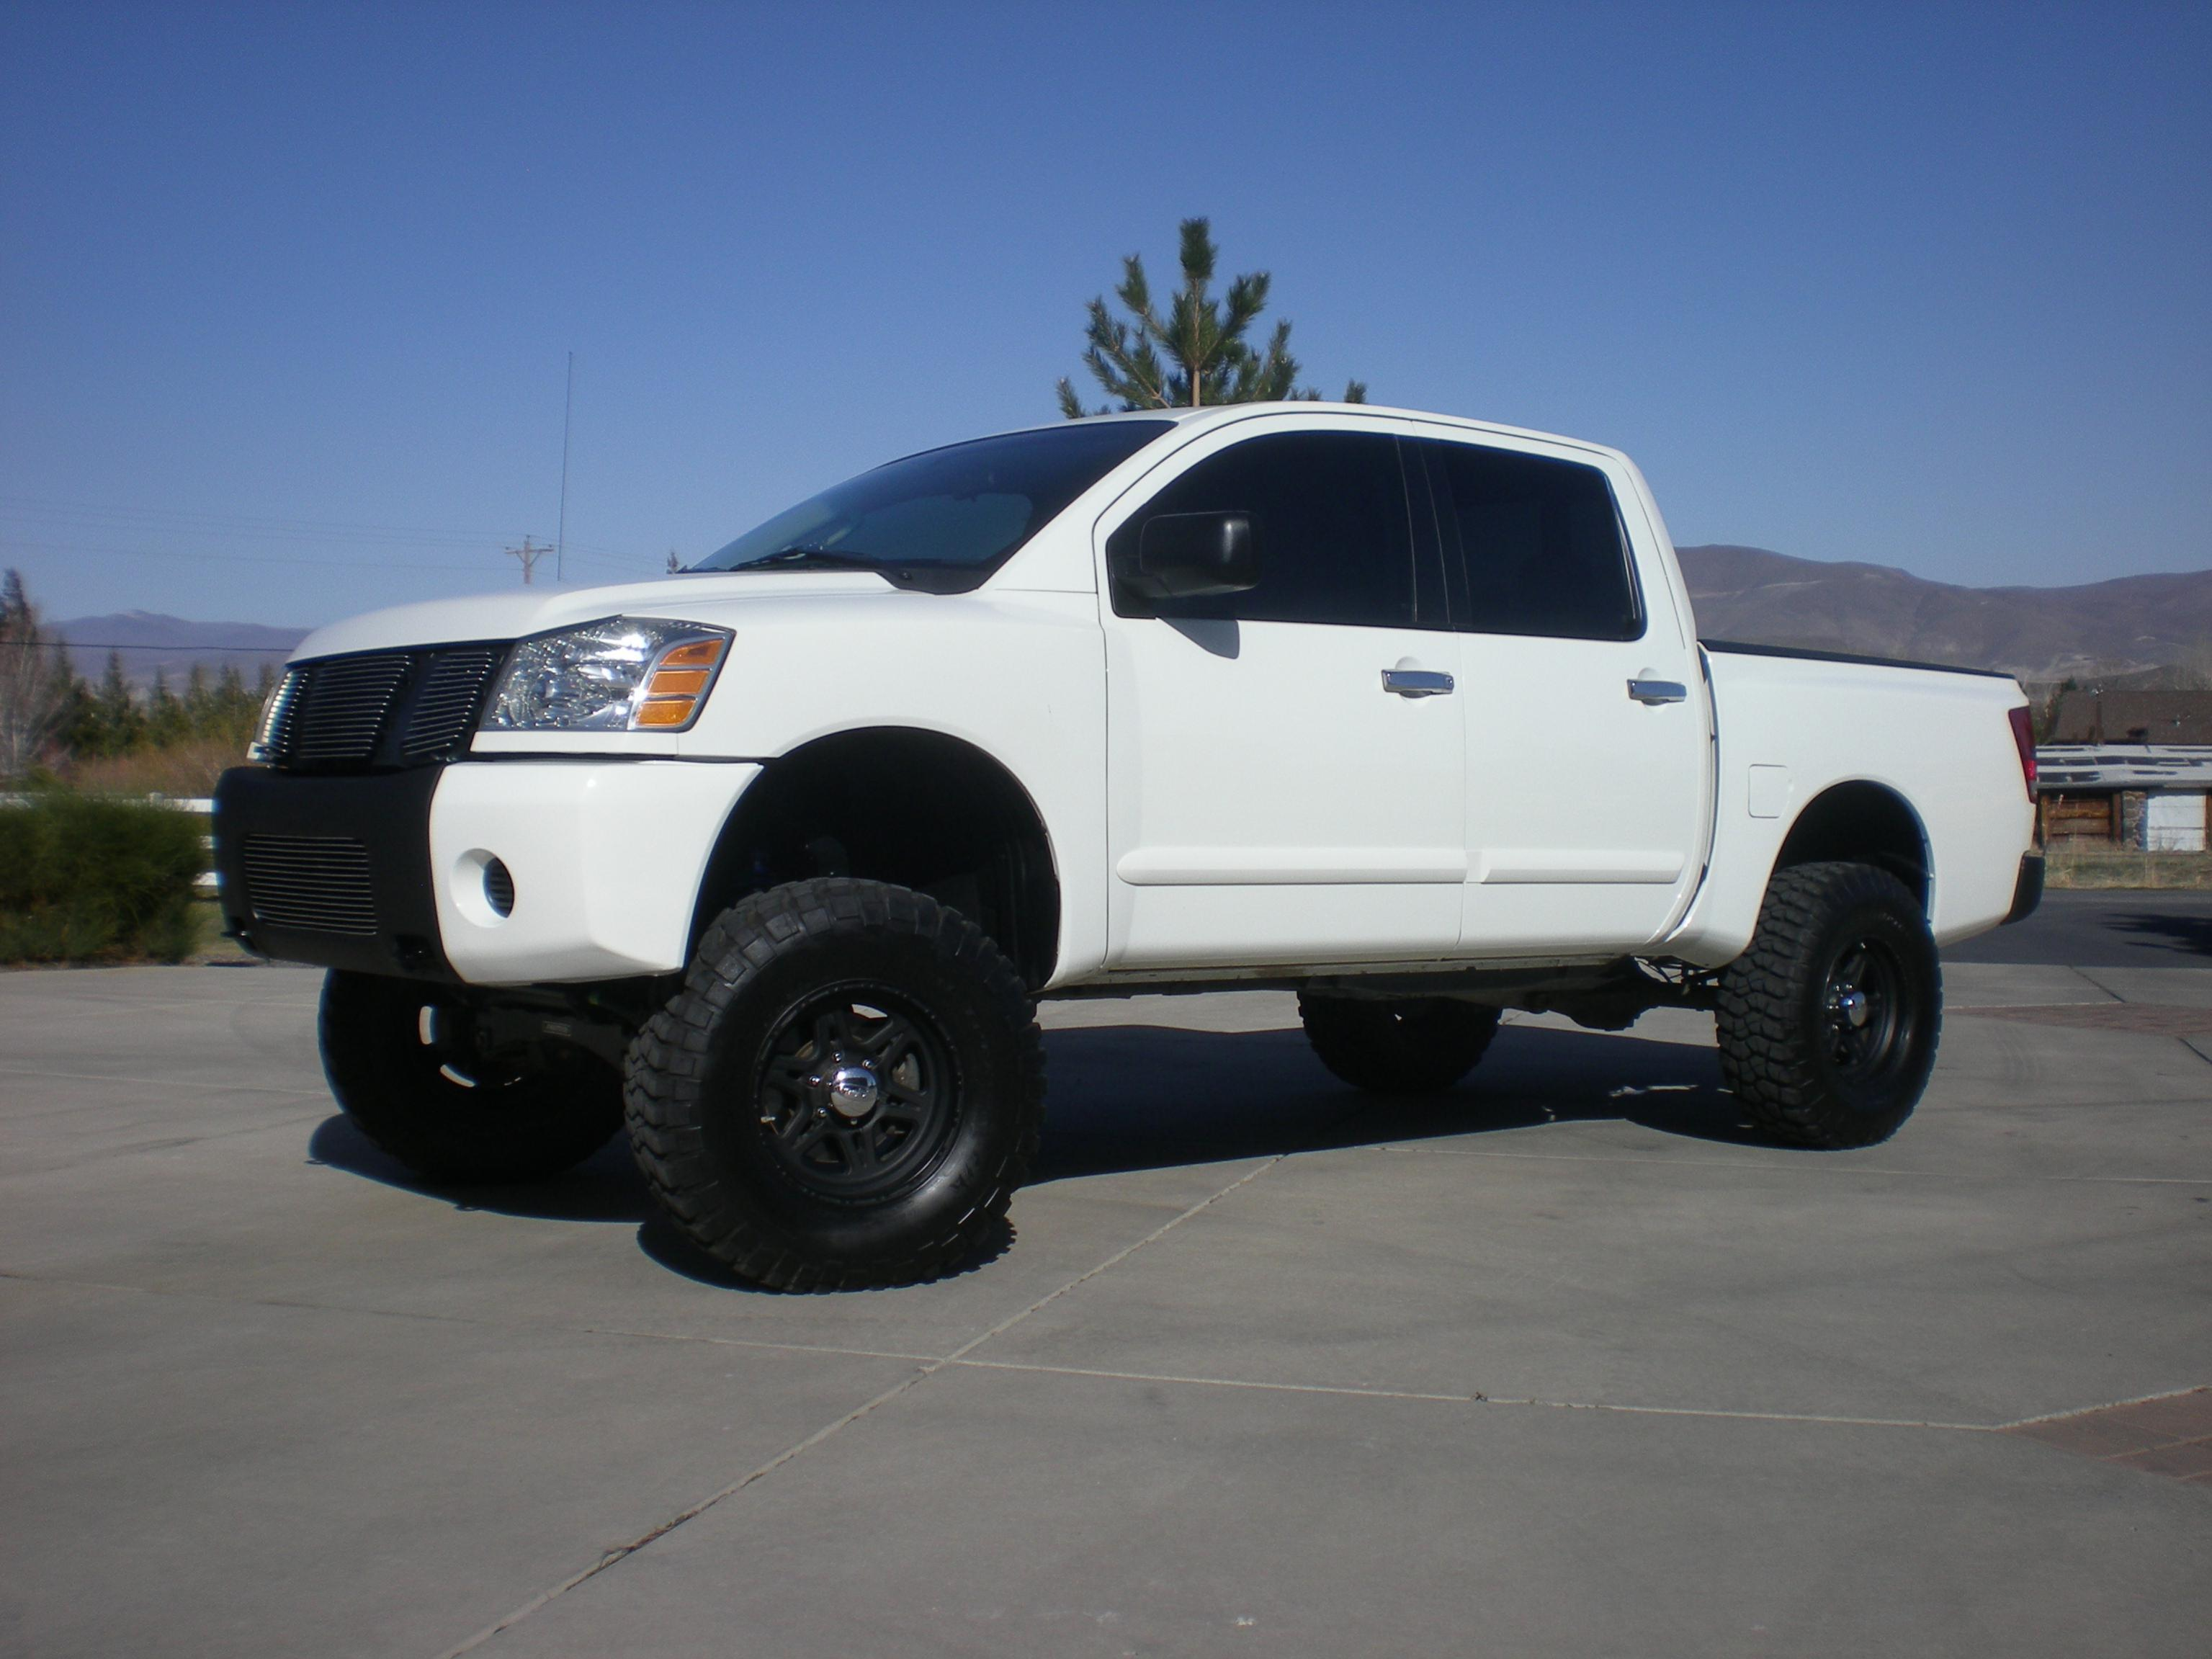 2007 Nissan Titan 4x4 Lifted Low Miles Look